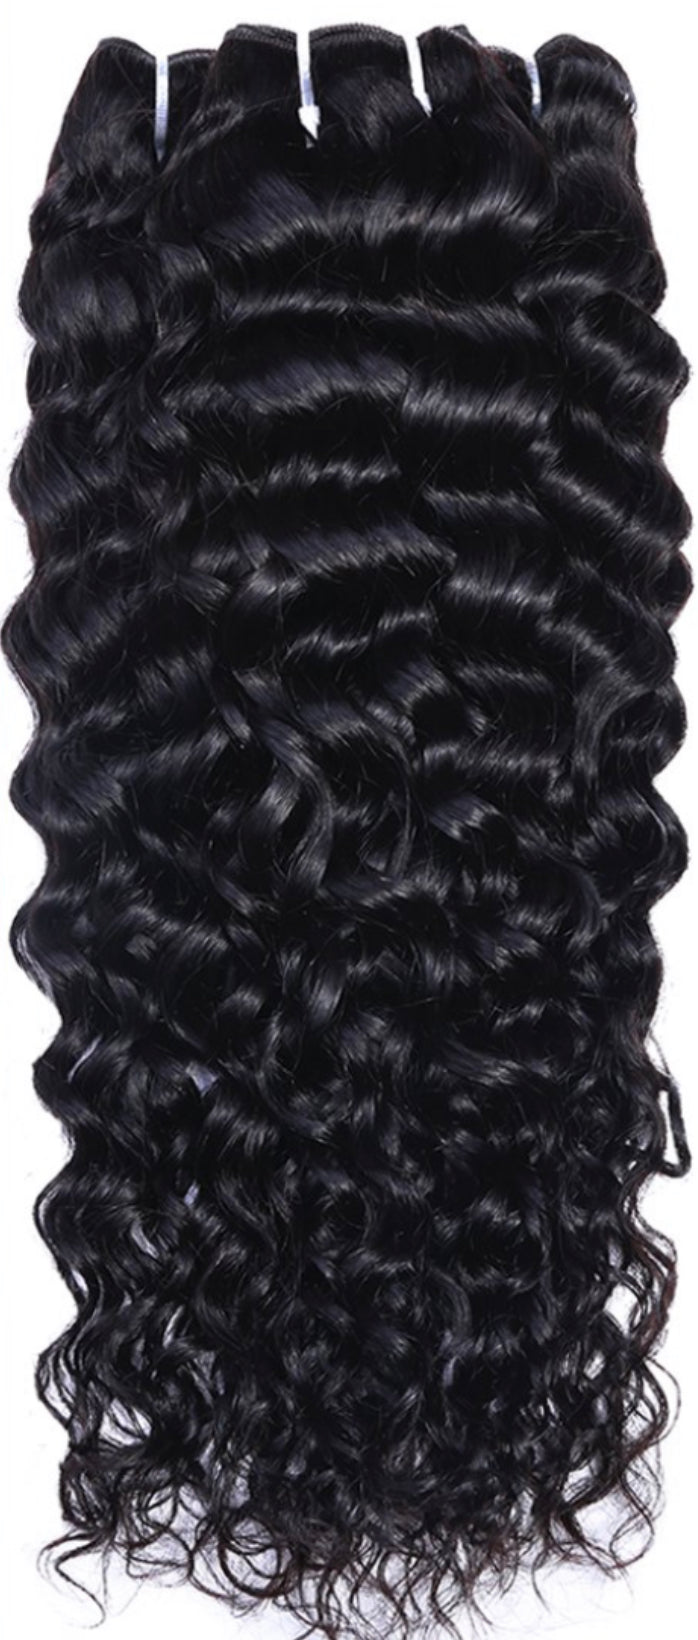 Raw Burmese Exotic Curly Hair Extensions